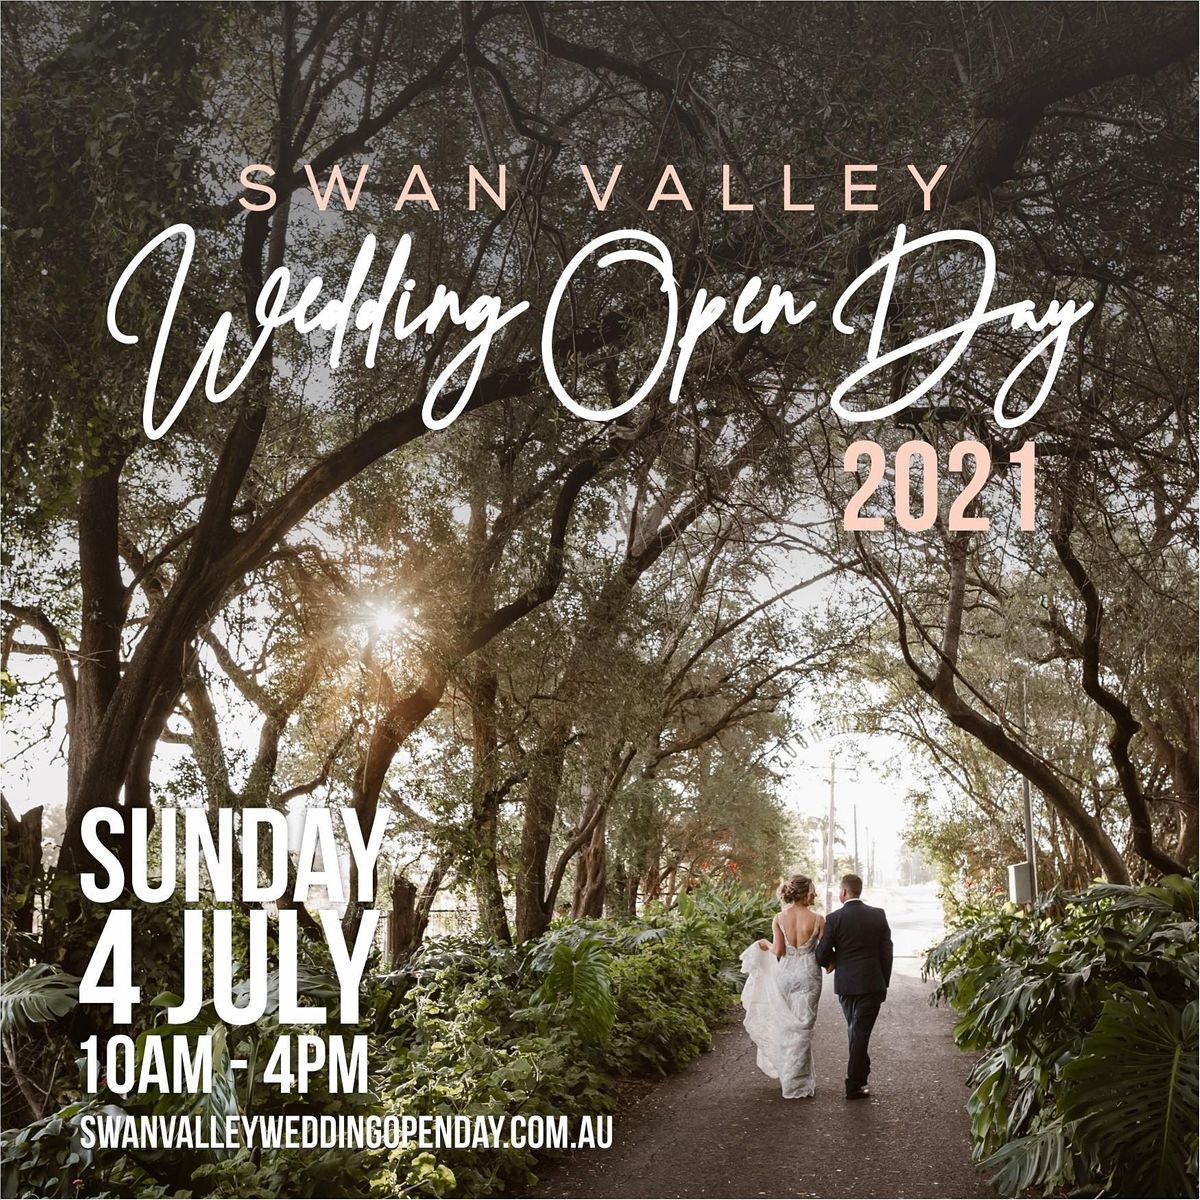 Swan Valley Wedding Open Day, 4 July | Event in Swan Valley | AllEvents.in